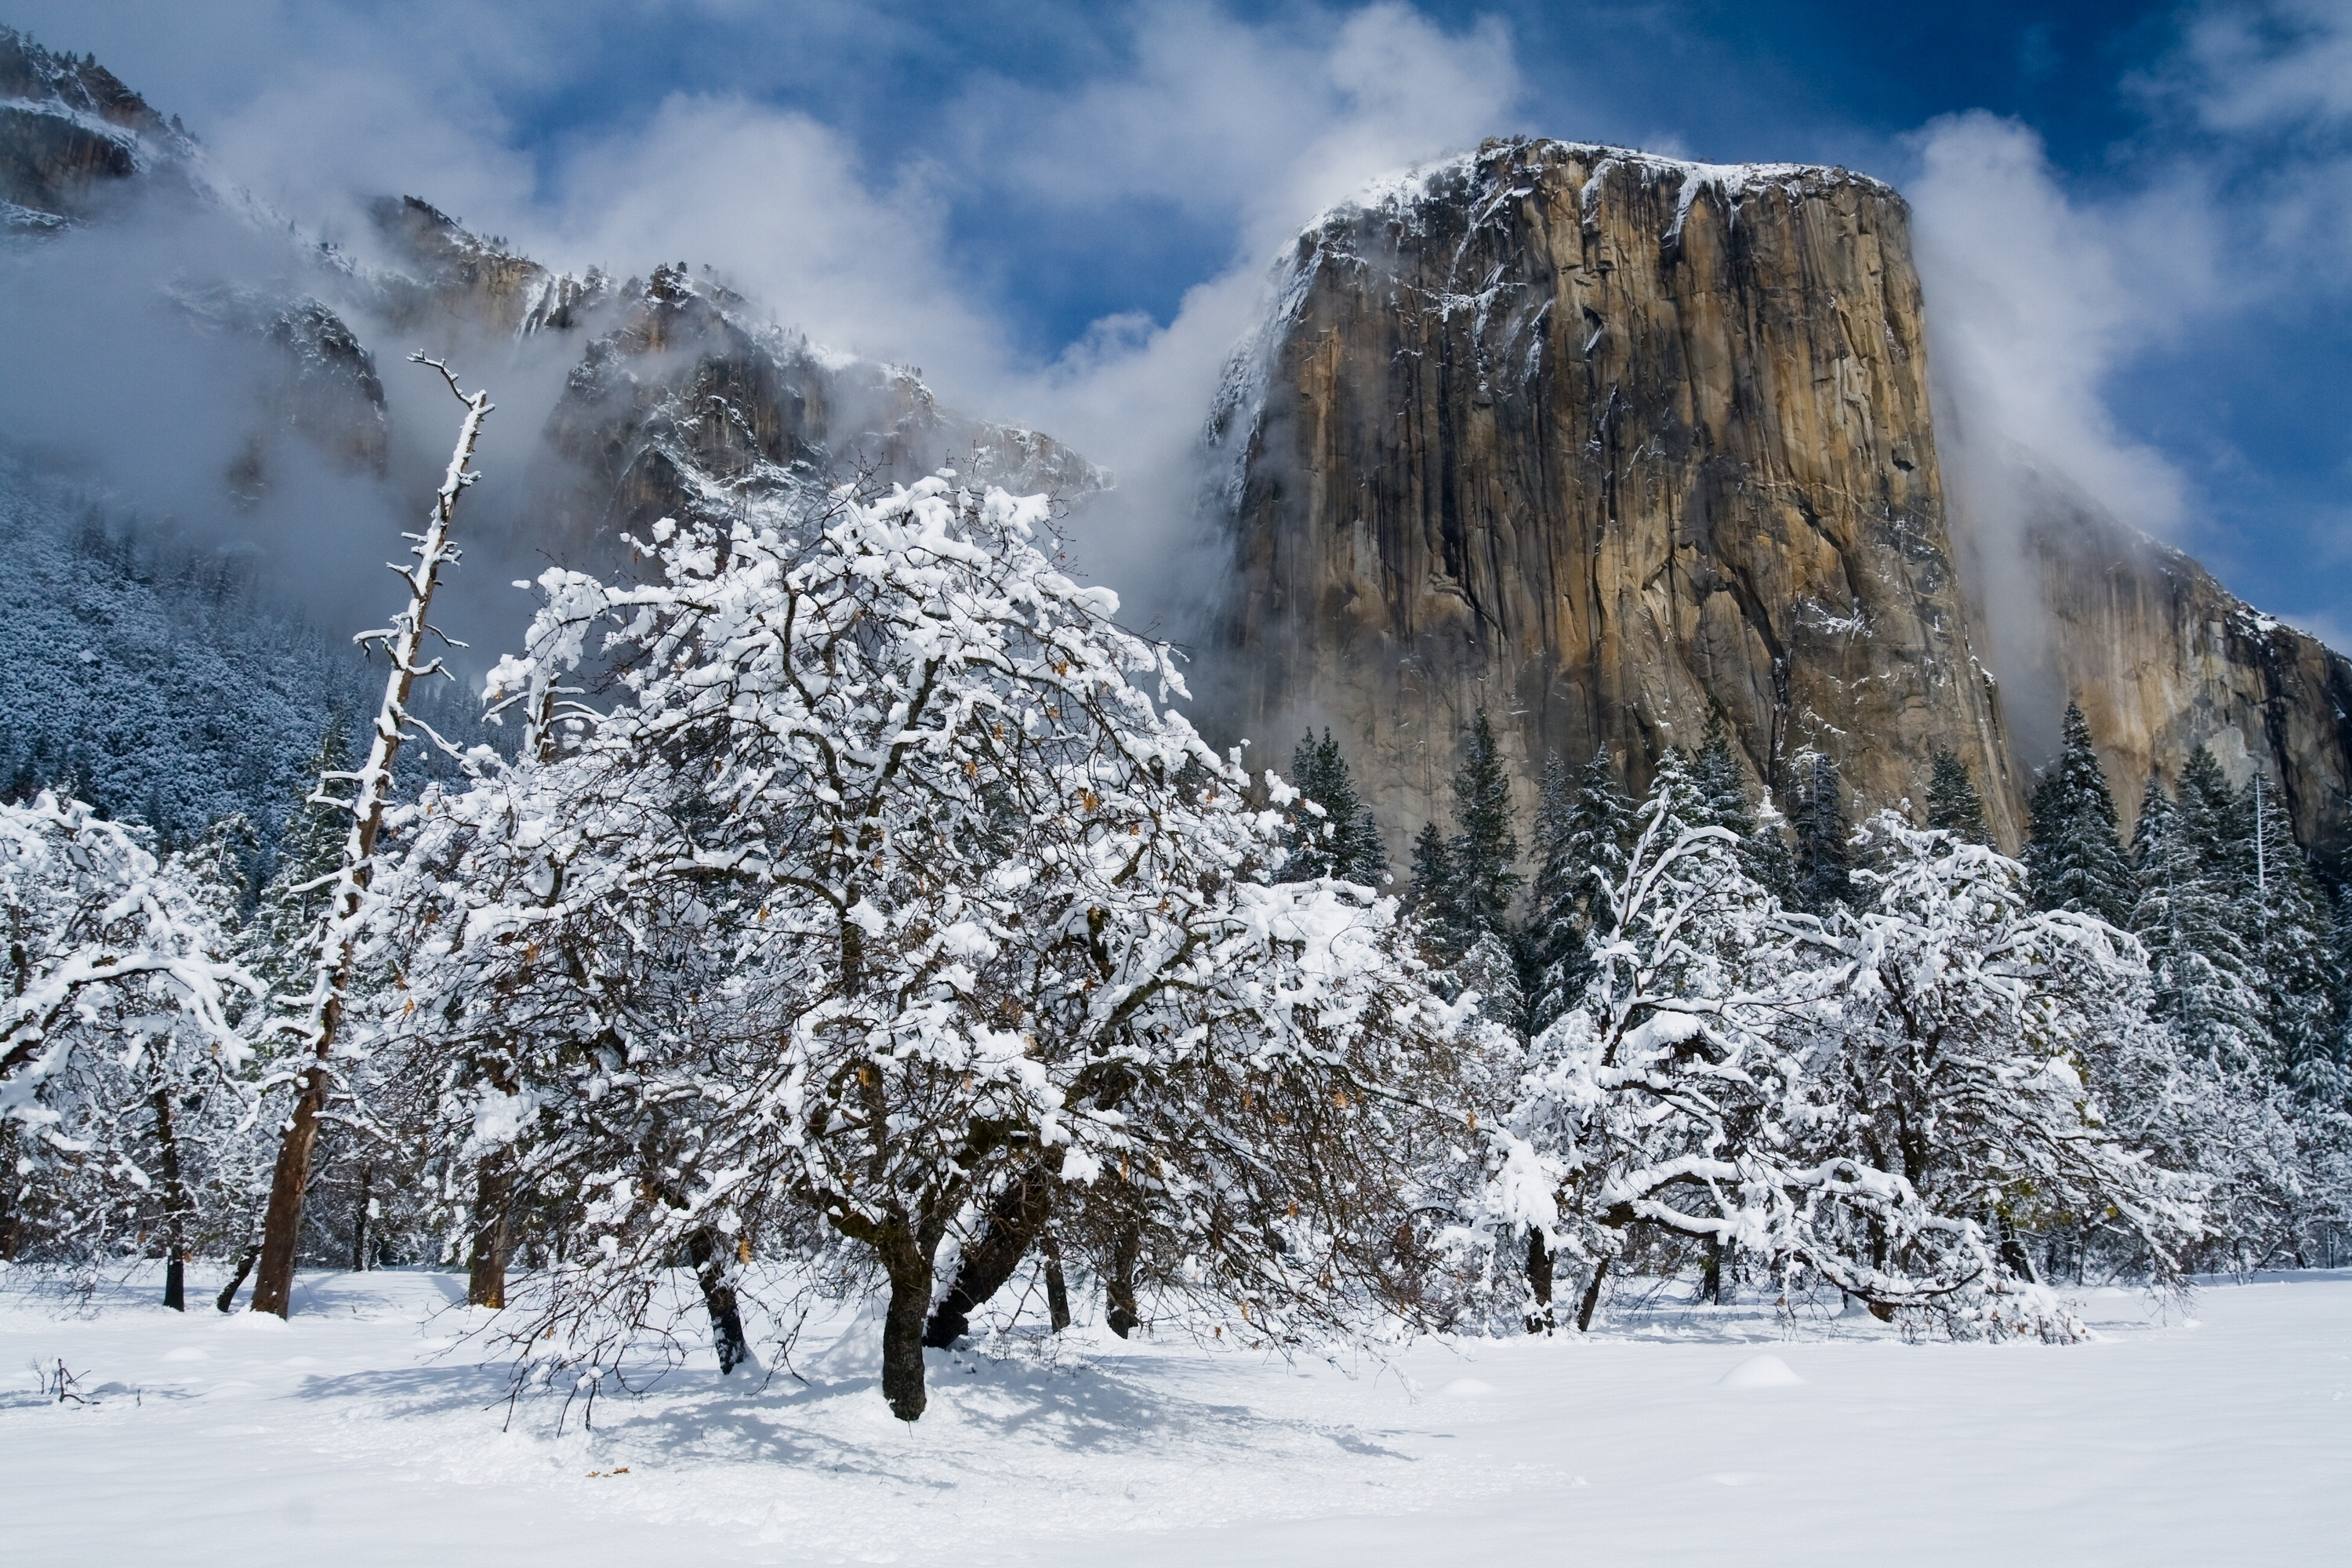 Hd wallpaper yosemite - Hd Wallpaper Background Id 676517